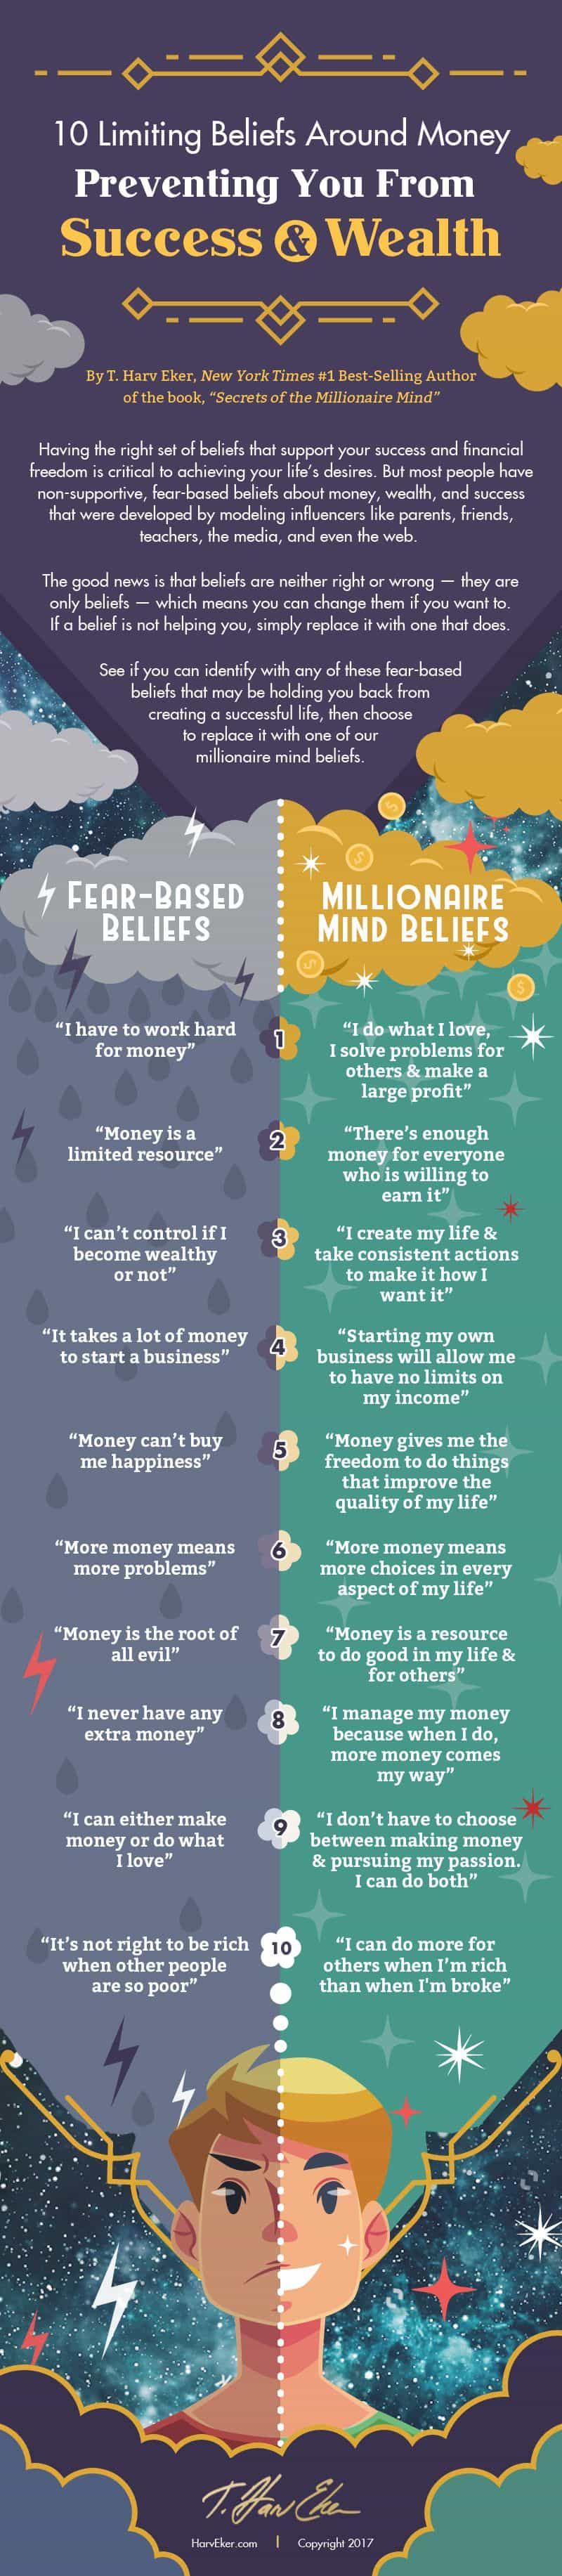 10 Limiting Beliefs Around Money Preventing You From Success & Wealth [Infographic]